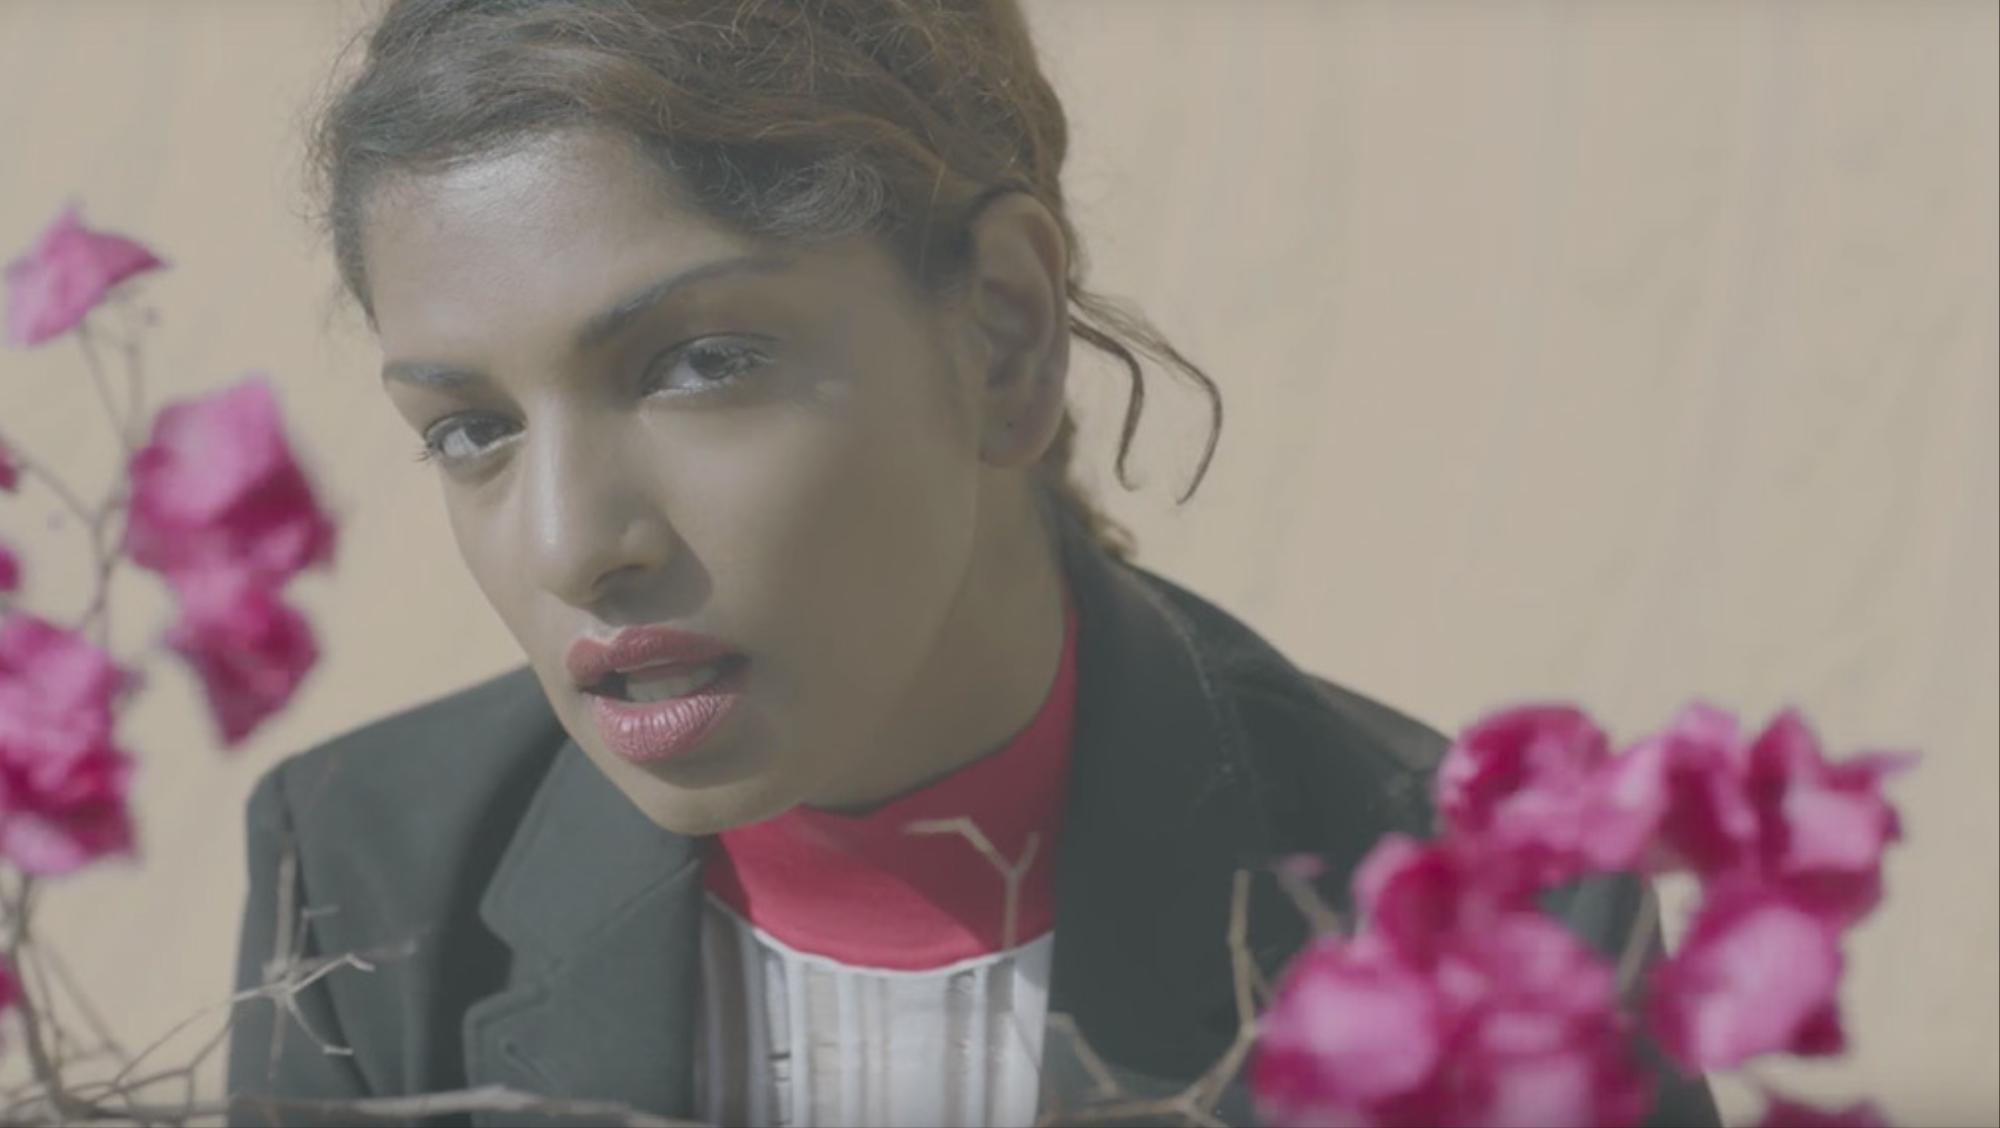 m.i.a. is captured by viviane sassen for her new video